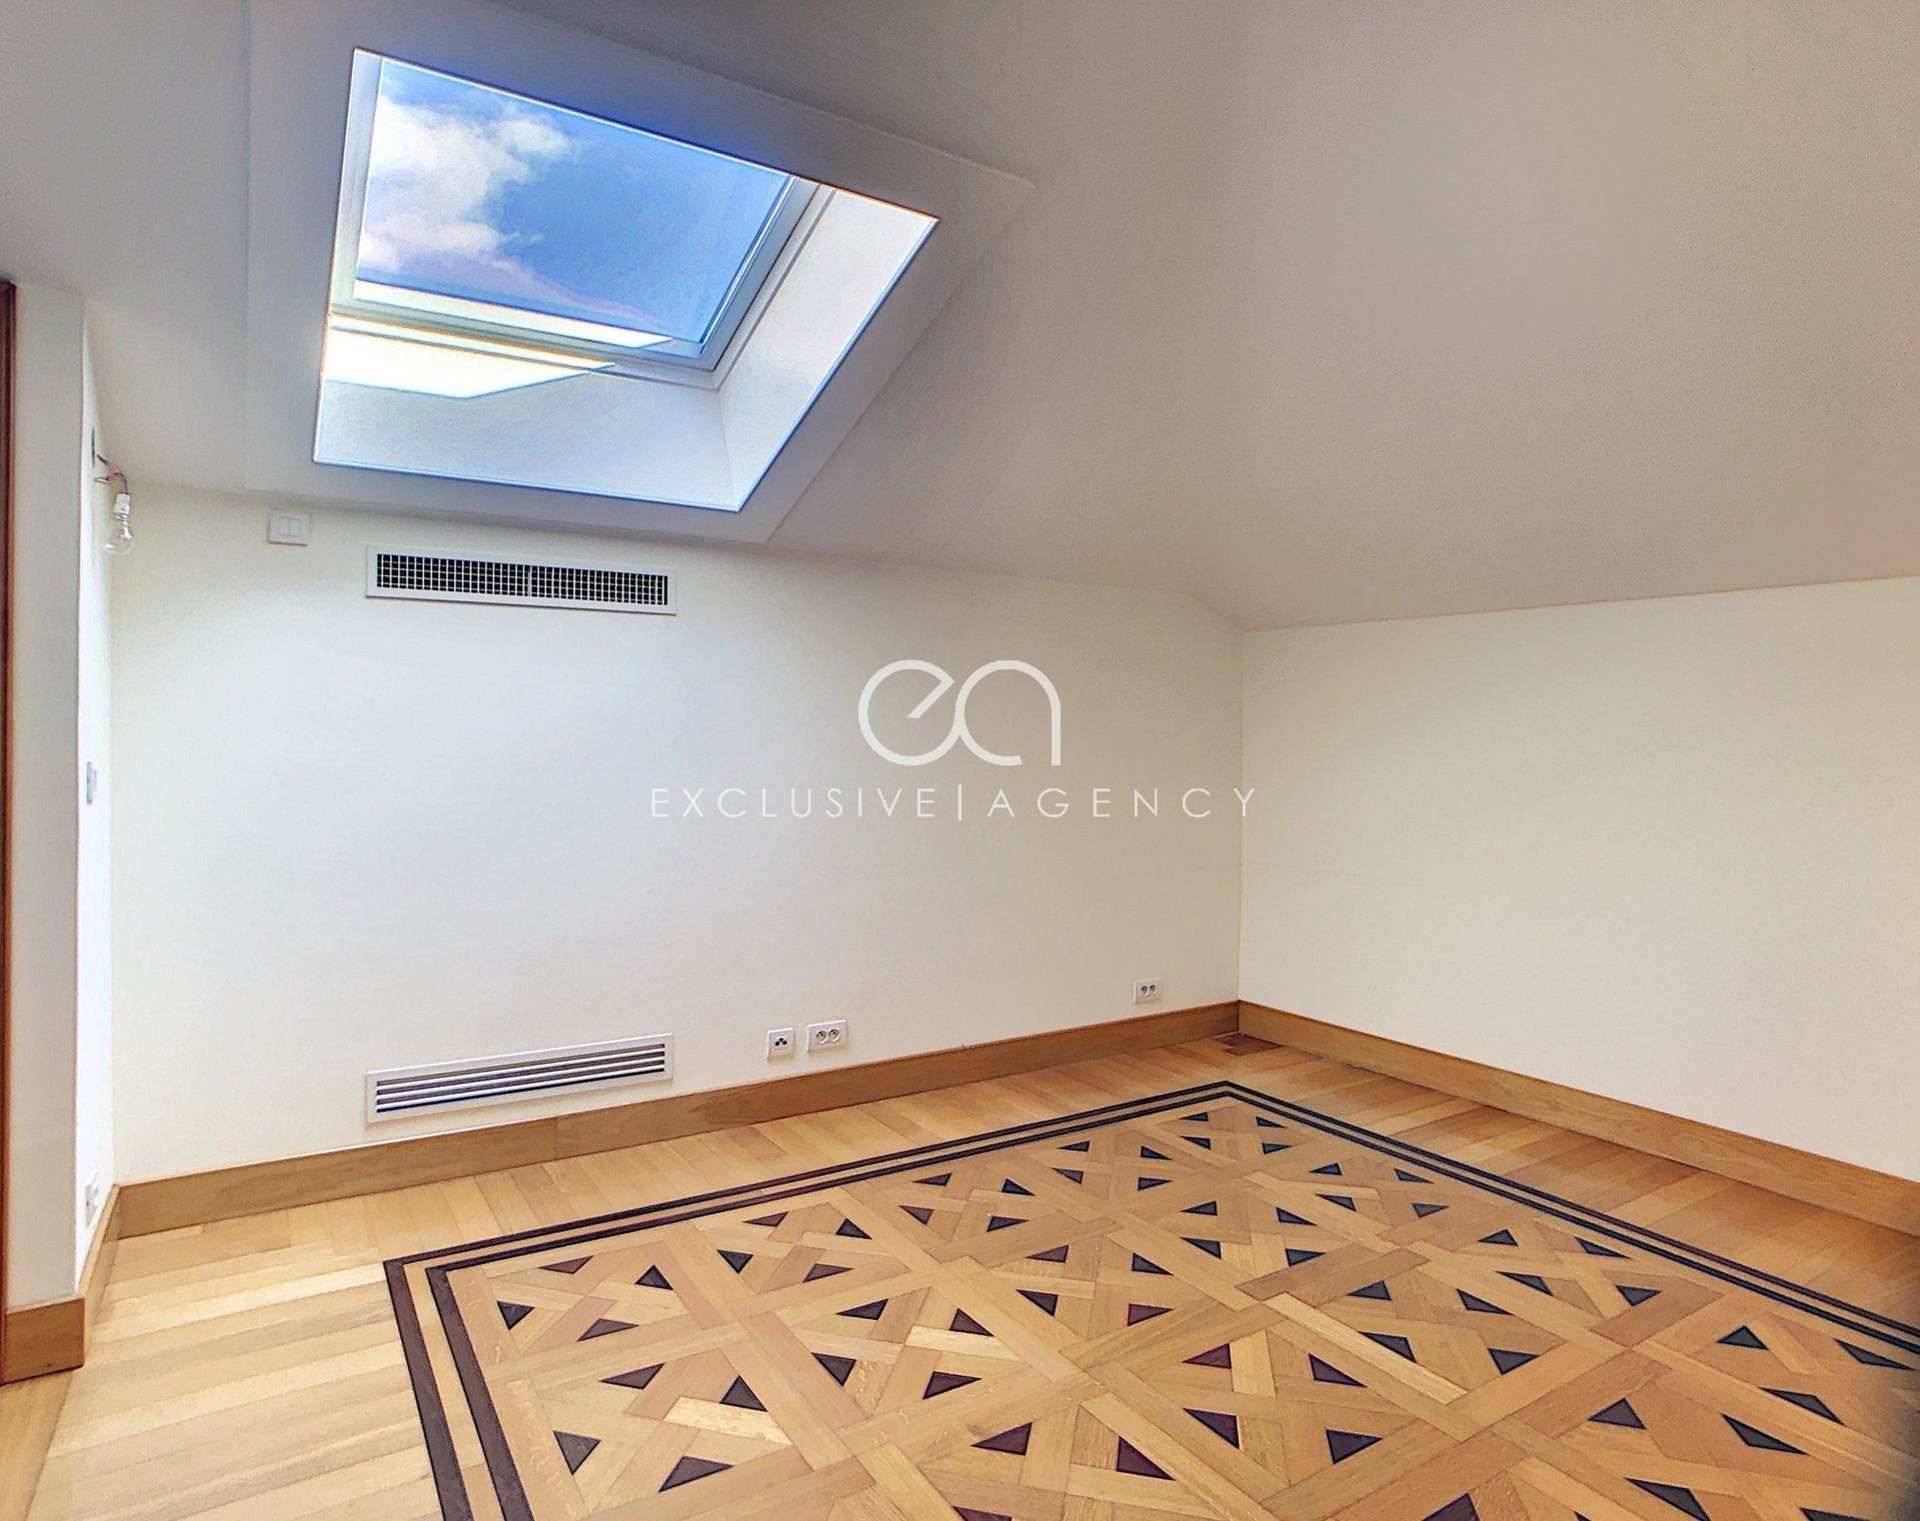 Sale Cannes magnificent 6 rooms 172sqm new with 14sqm terrace exclusive agency